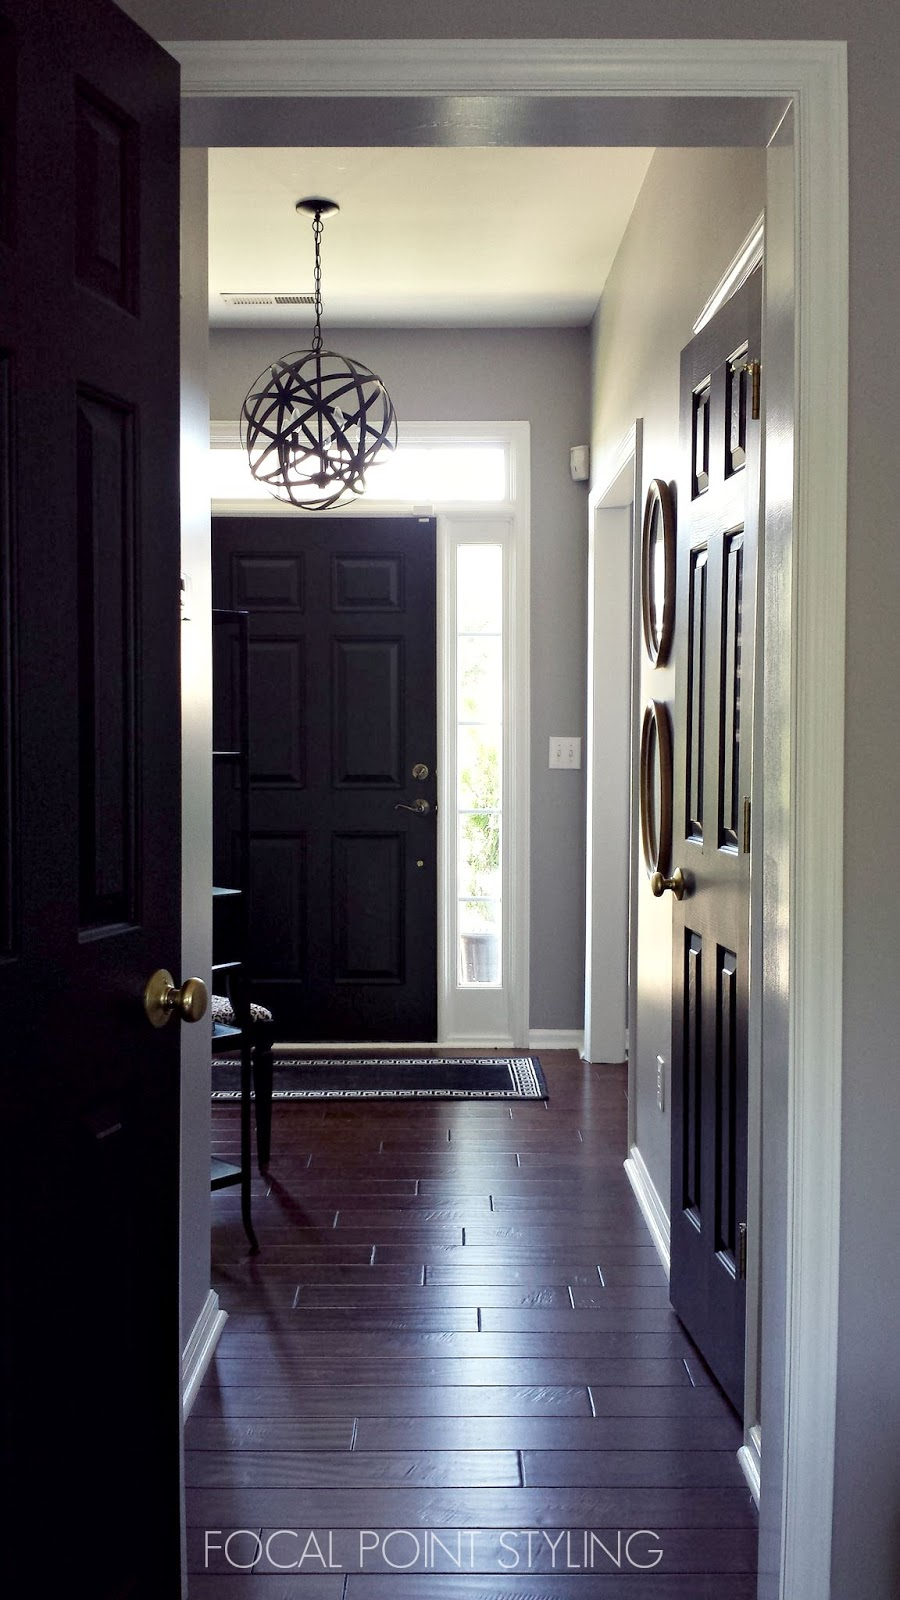 Focal point styling how to paint interior doors black for Black interior paint